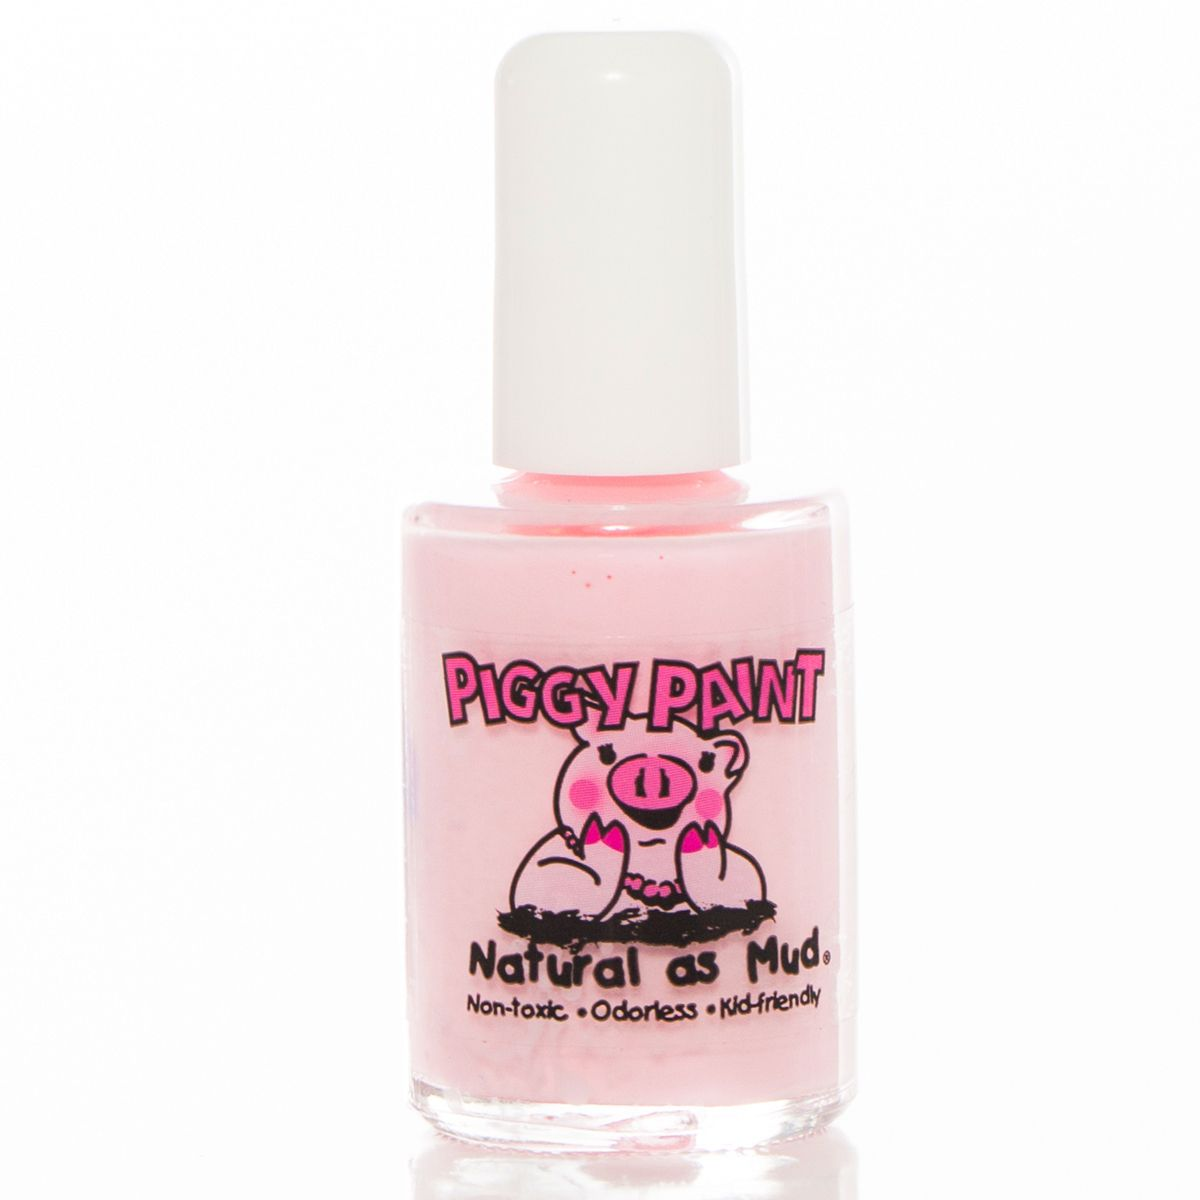 piggypaint) Muddles the Pig *NEW* - Piggy Paint | This looks like ...